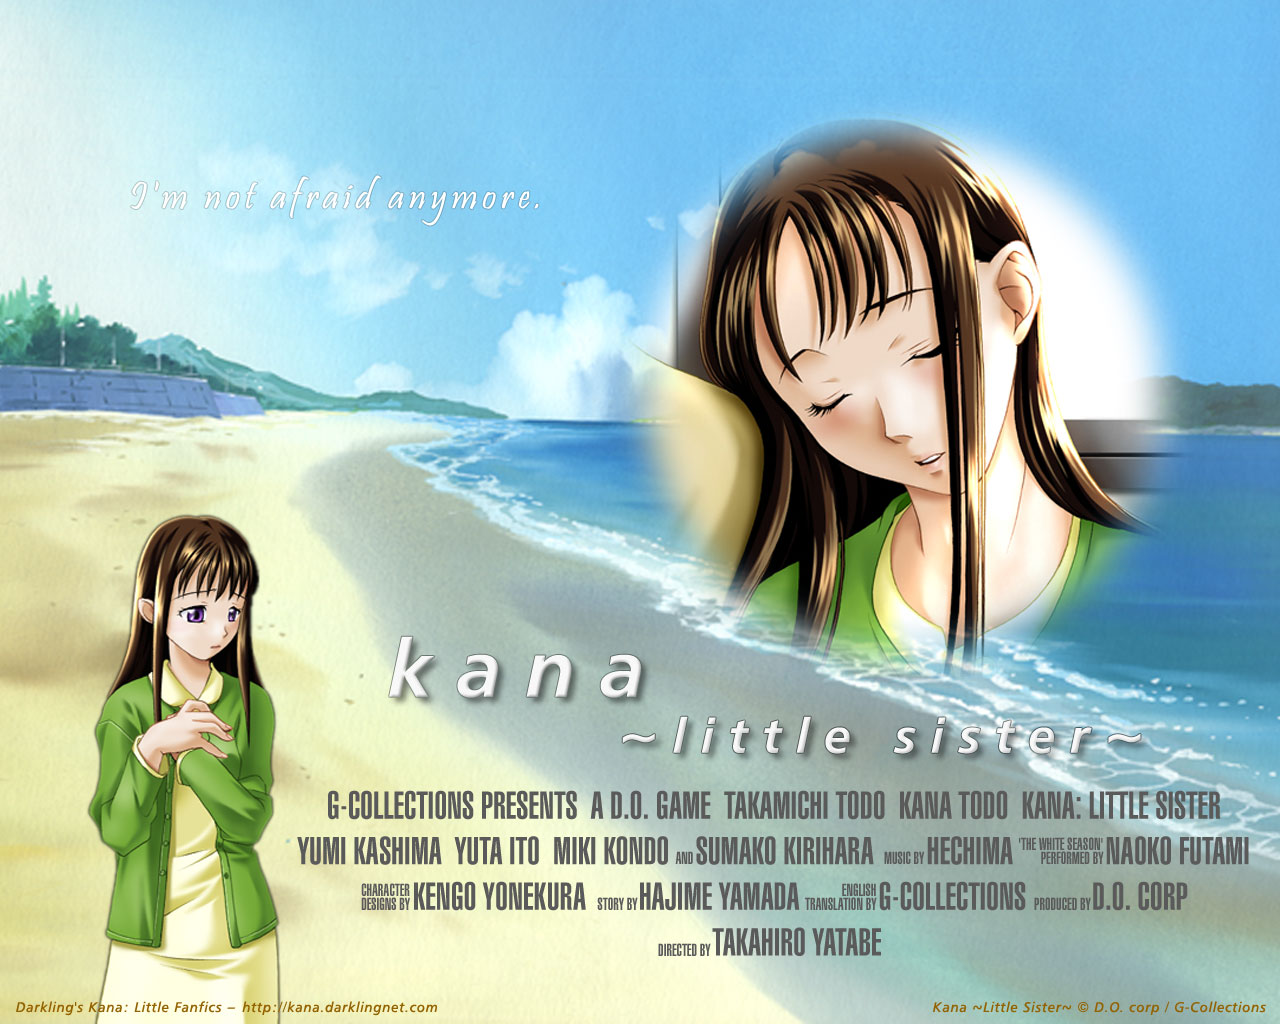 Kana little sister free download full version pc game.